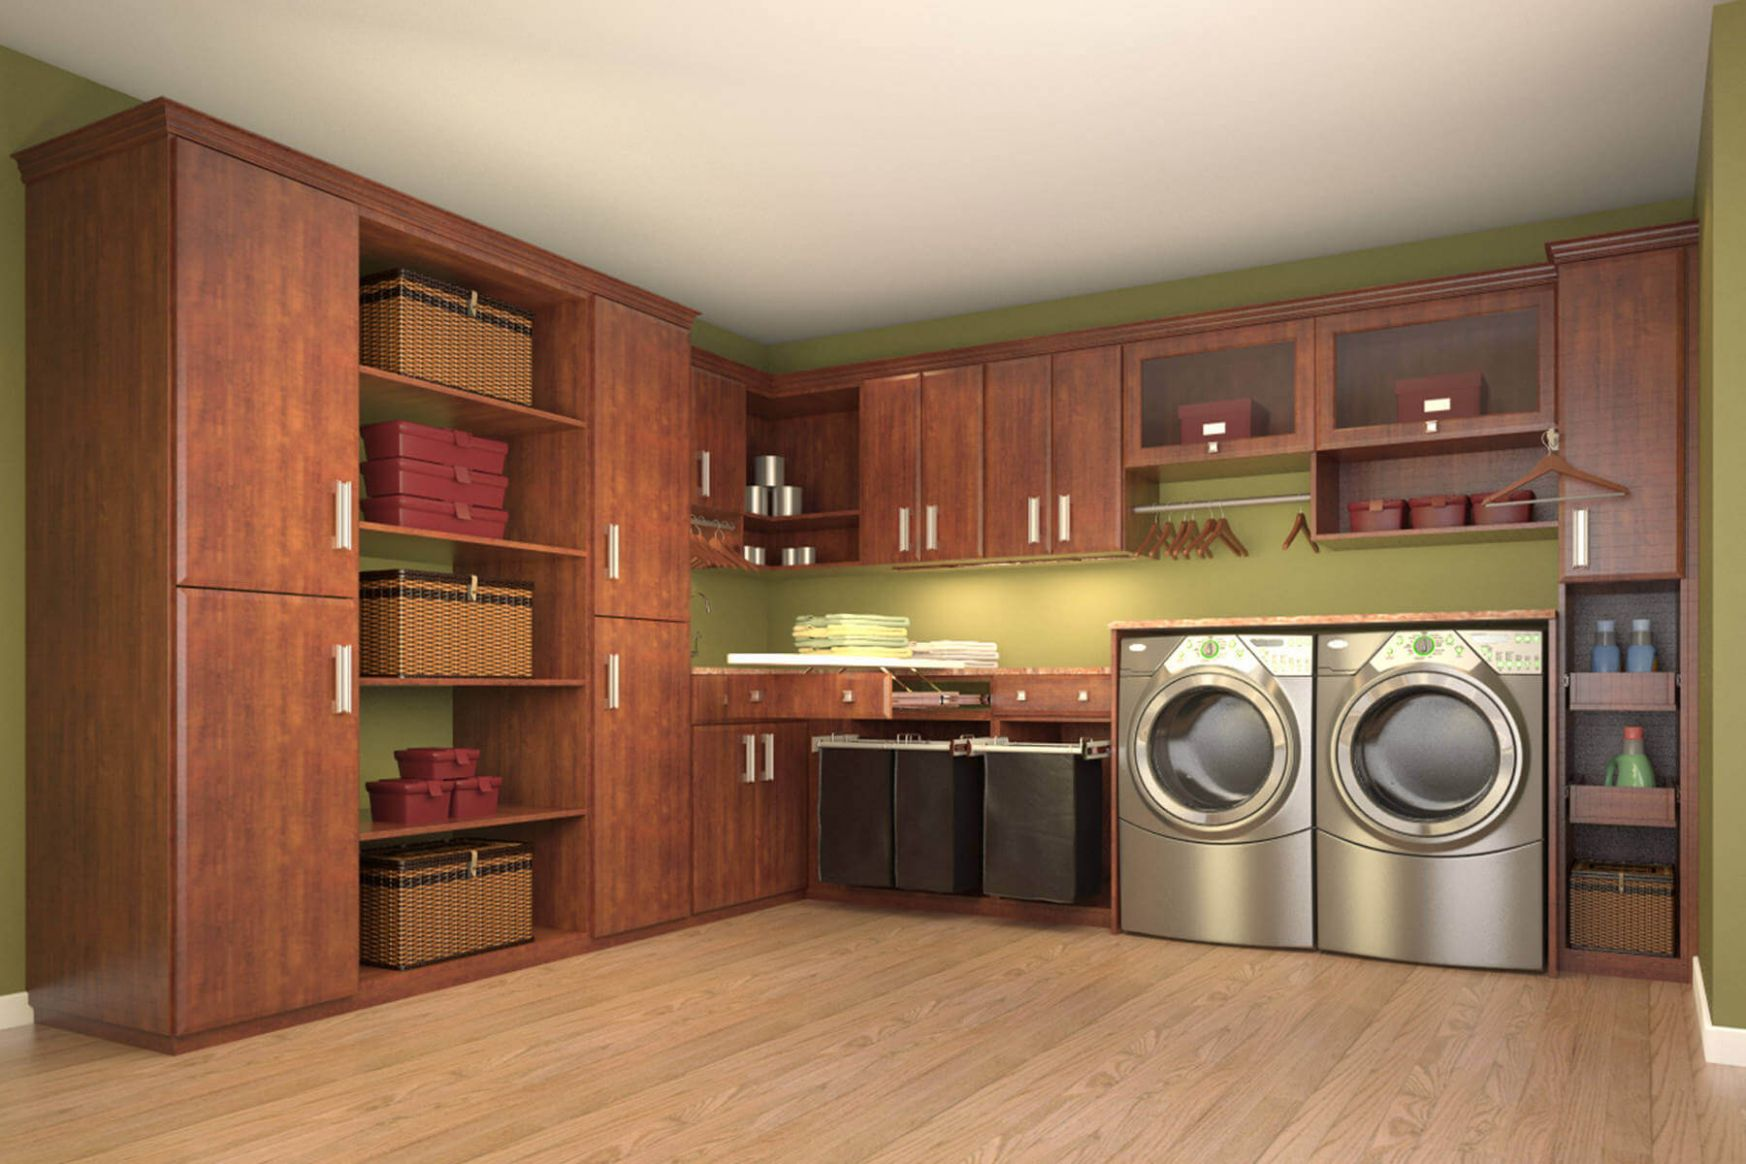 11 Laundry Room Ideas (Photos) - laundry room ideas in closet